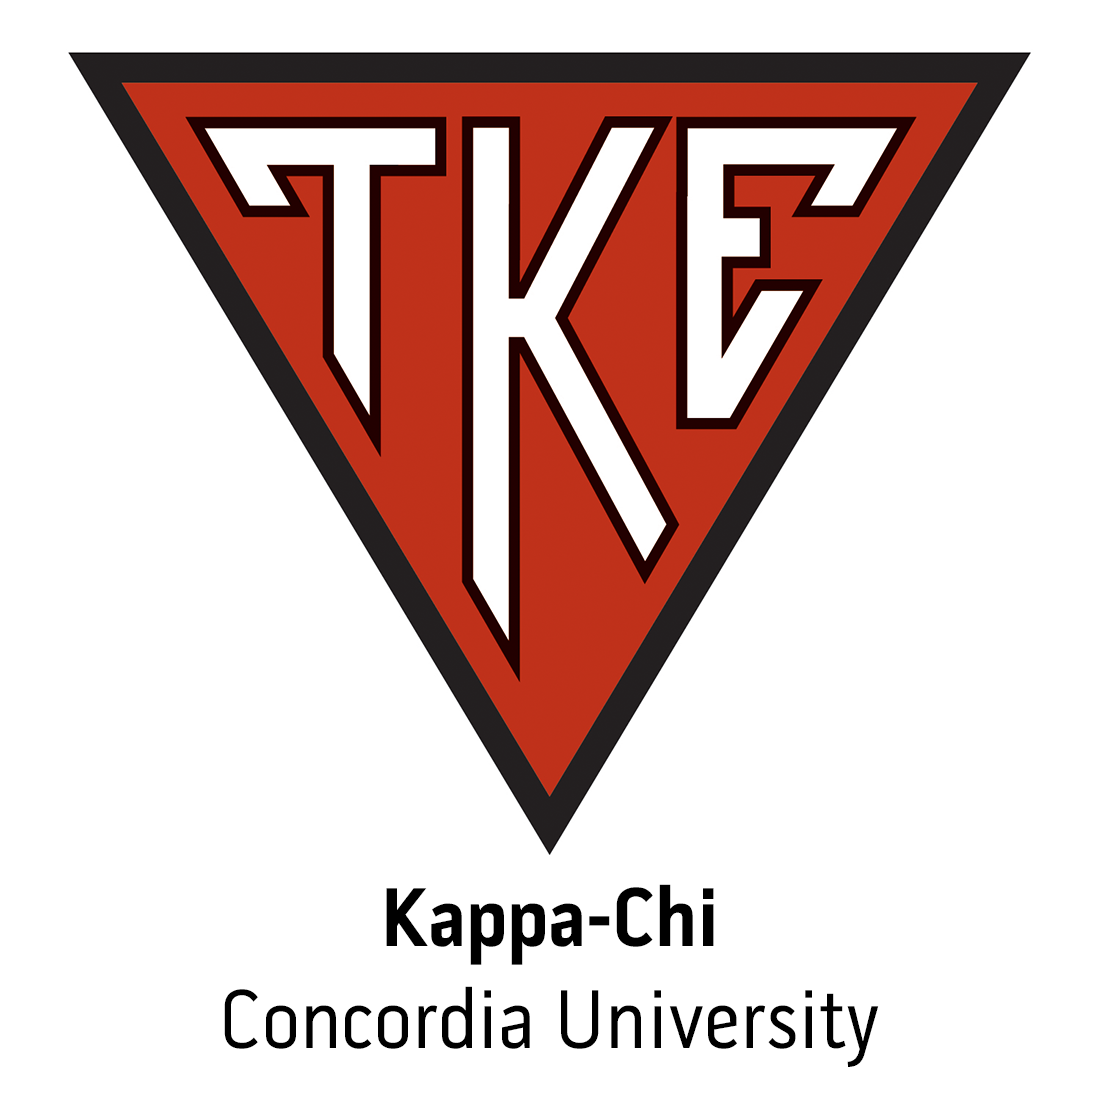 Kappa-Chi Chapter at Concordia University